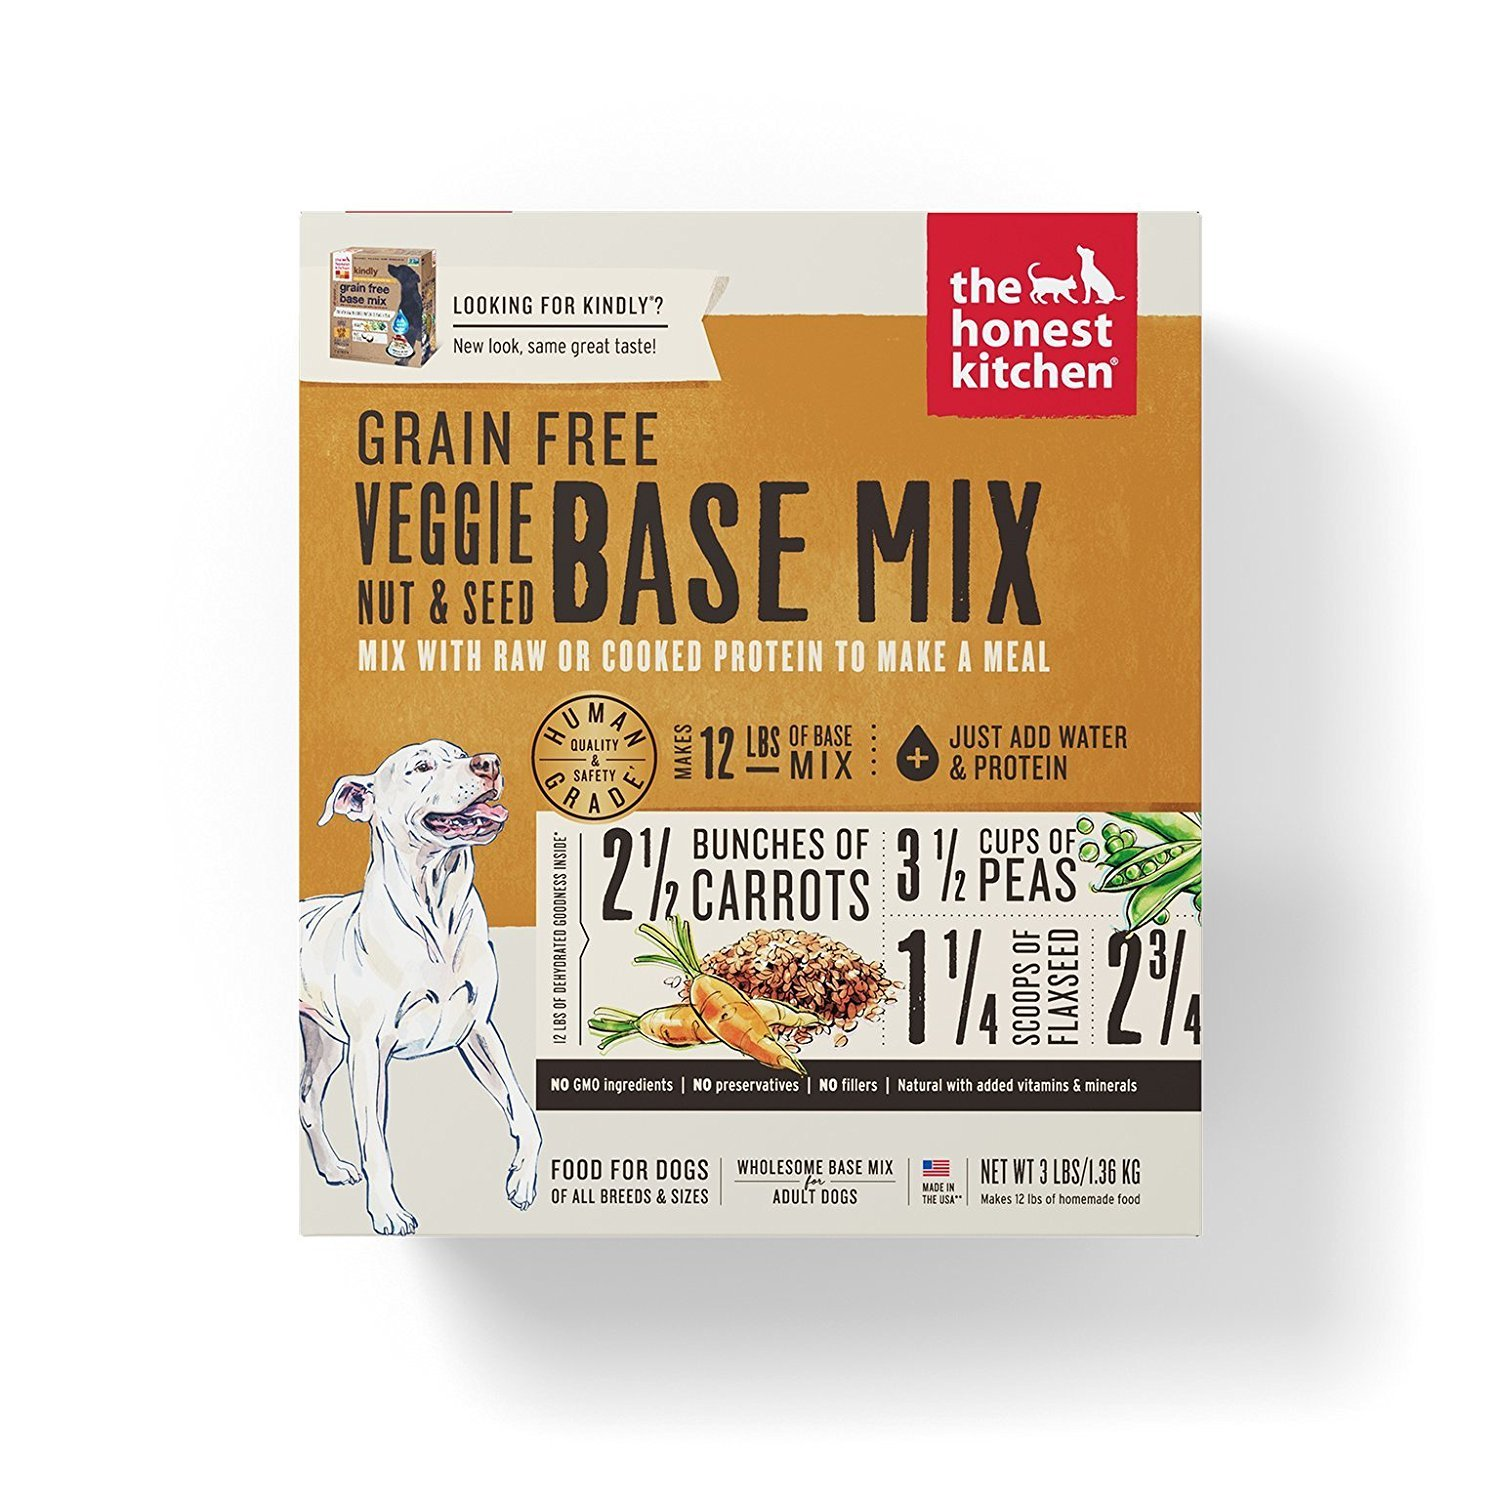 Honest Kitchen Grain Free Veggie, Nut and Seed Base Mix Dog Food 3 lb box - Kindly. Dehydrated Dog Food!!!